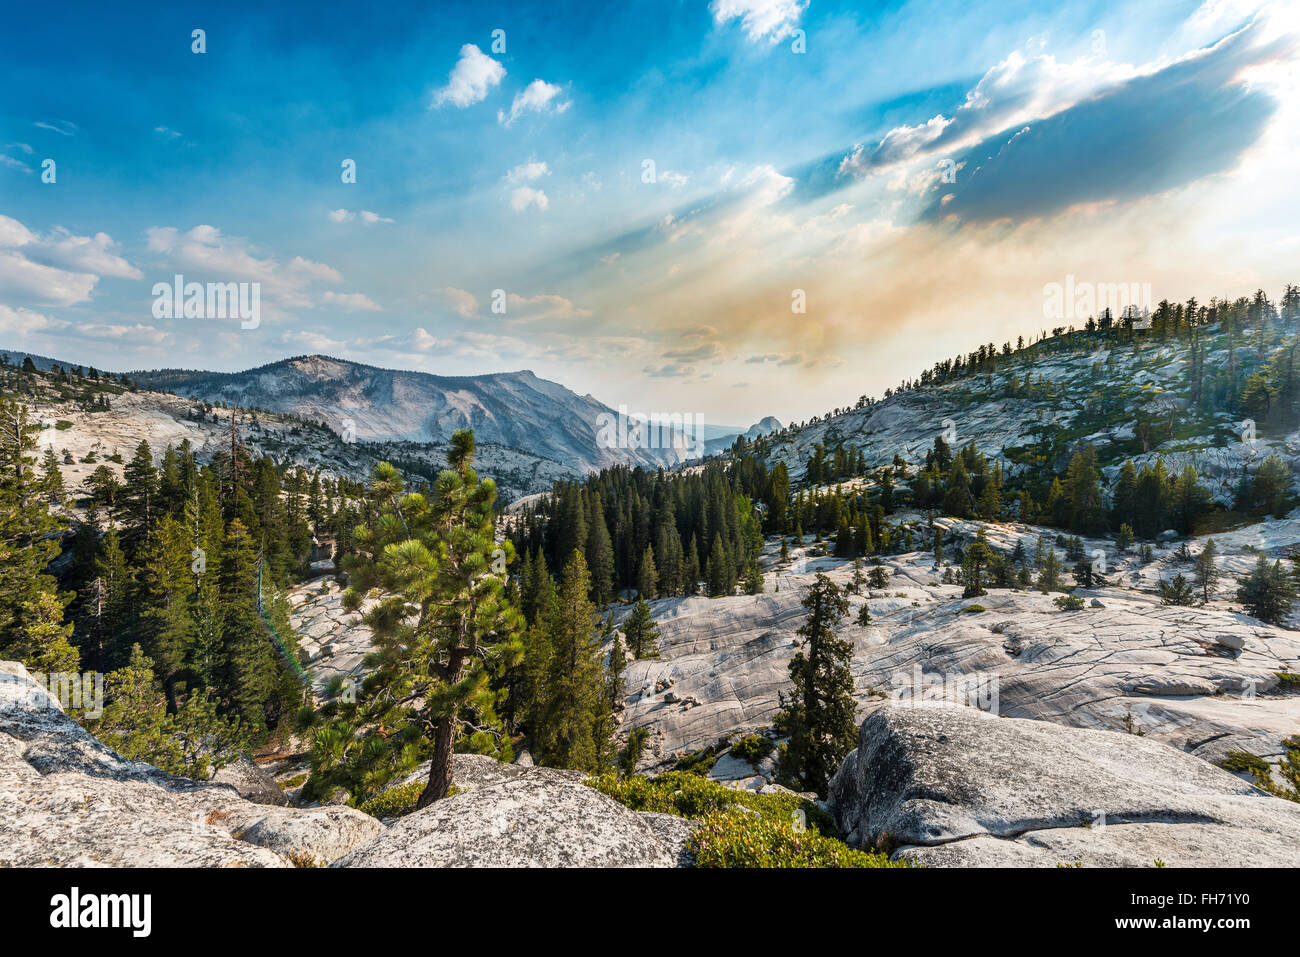 View into the High Sierra, Olmsted Point, Yosemite National Park, California, USA Stock Photo